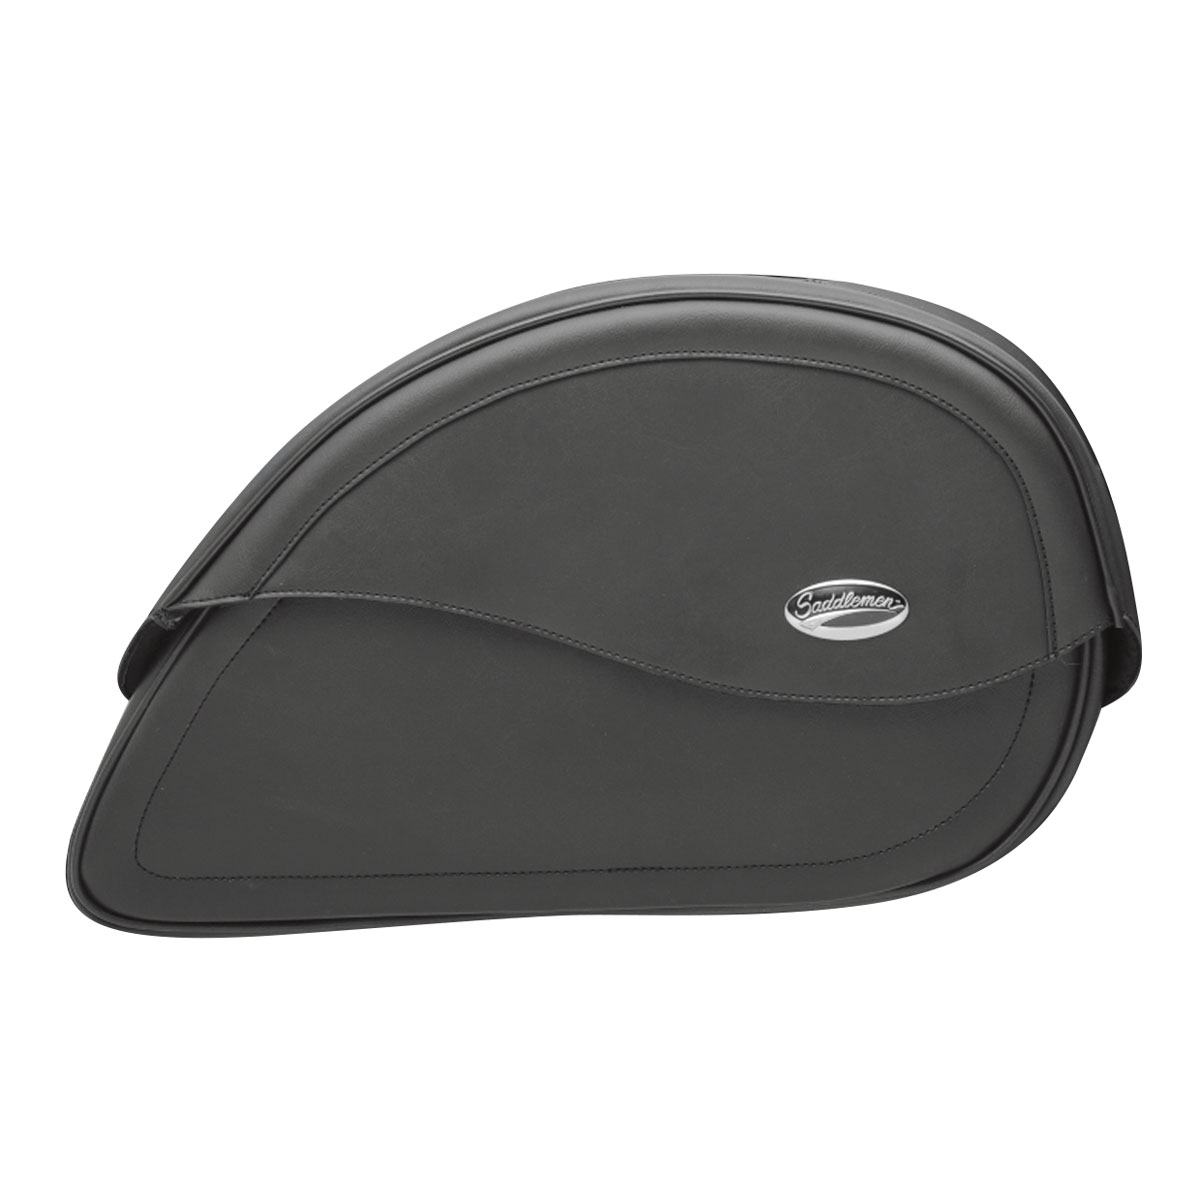 Saddlemen Cruis'n Teardrop Jumbo Saddlebag